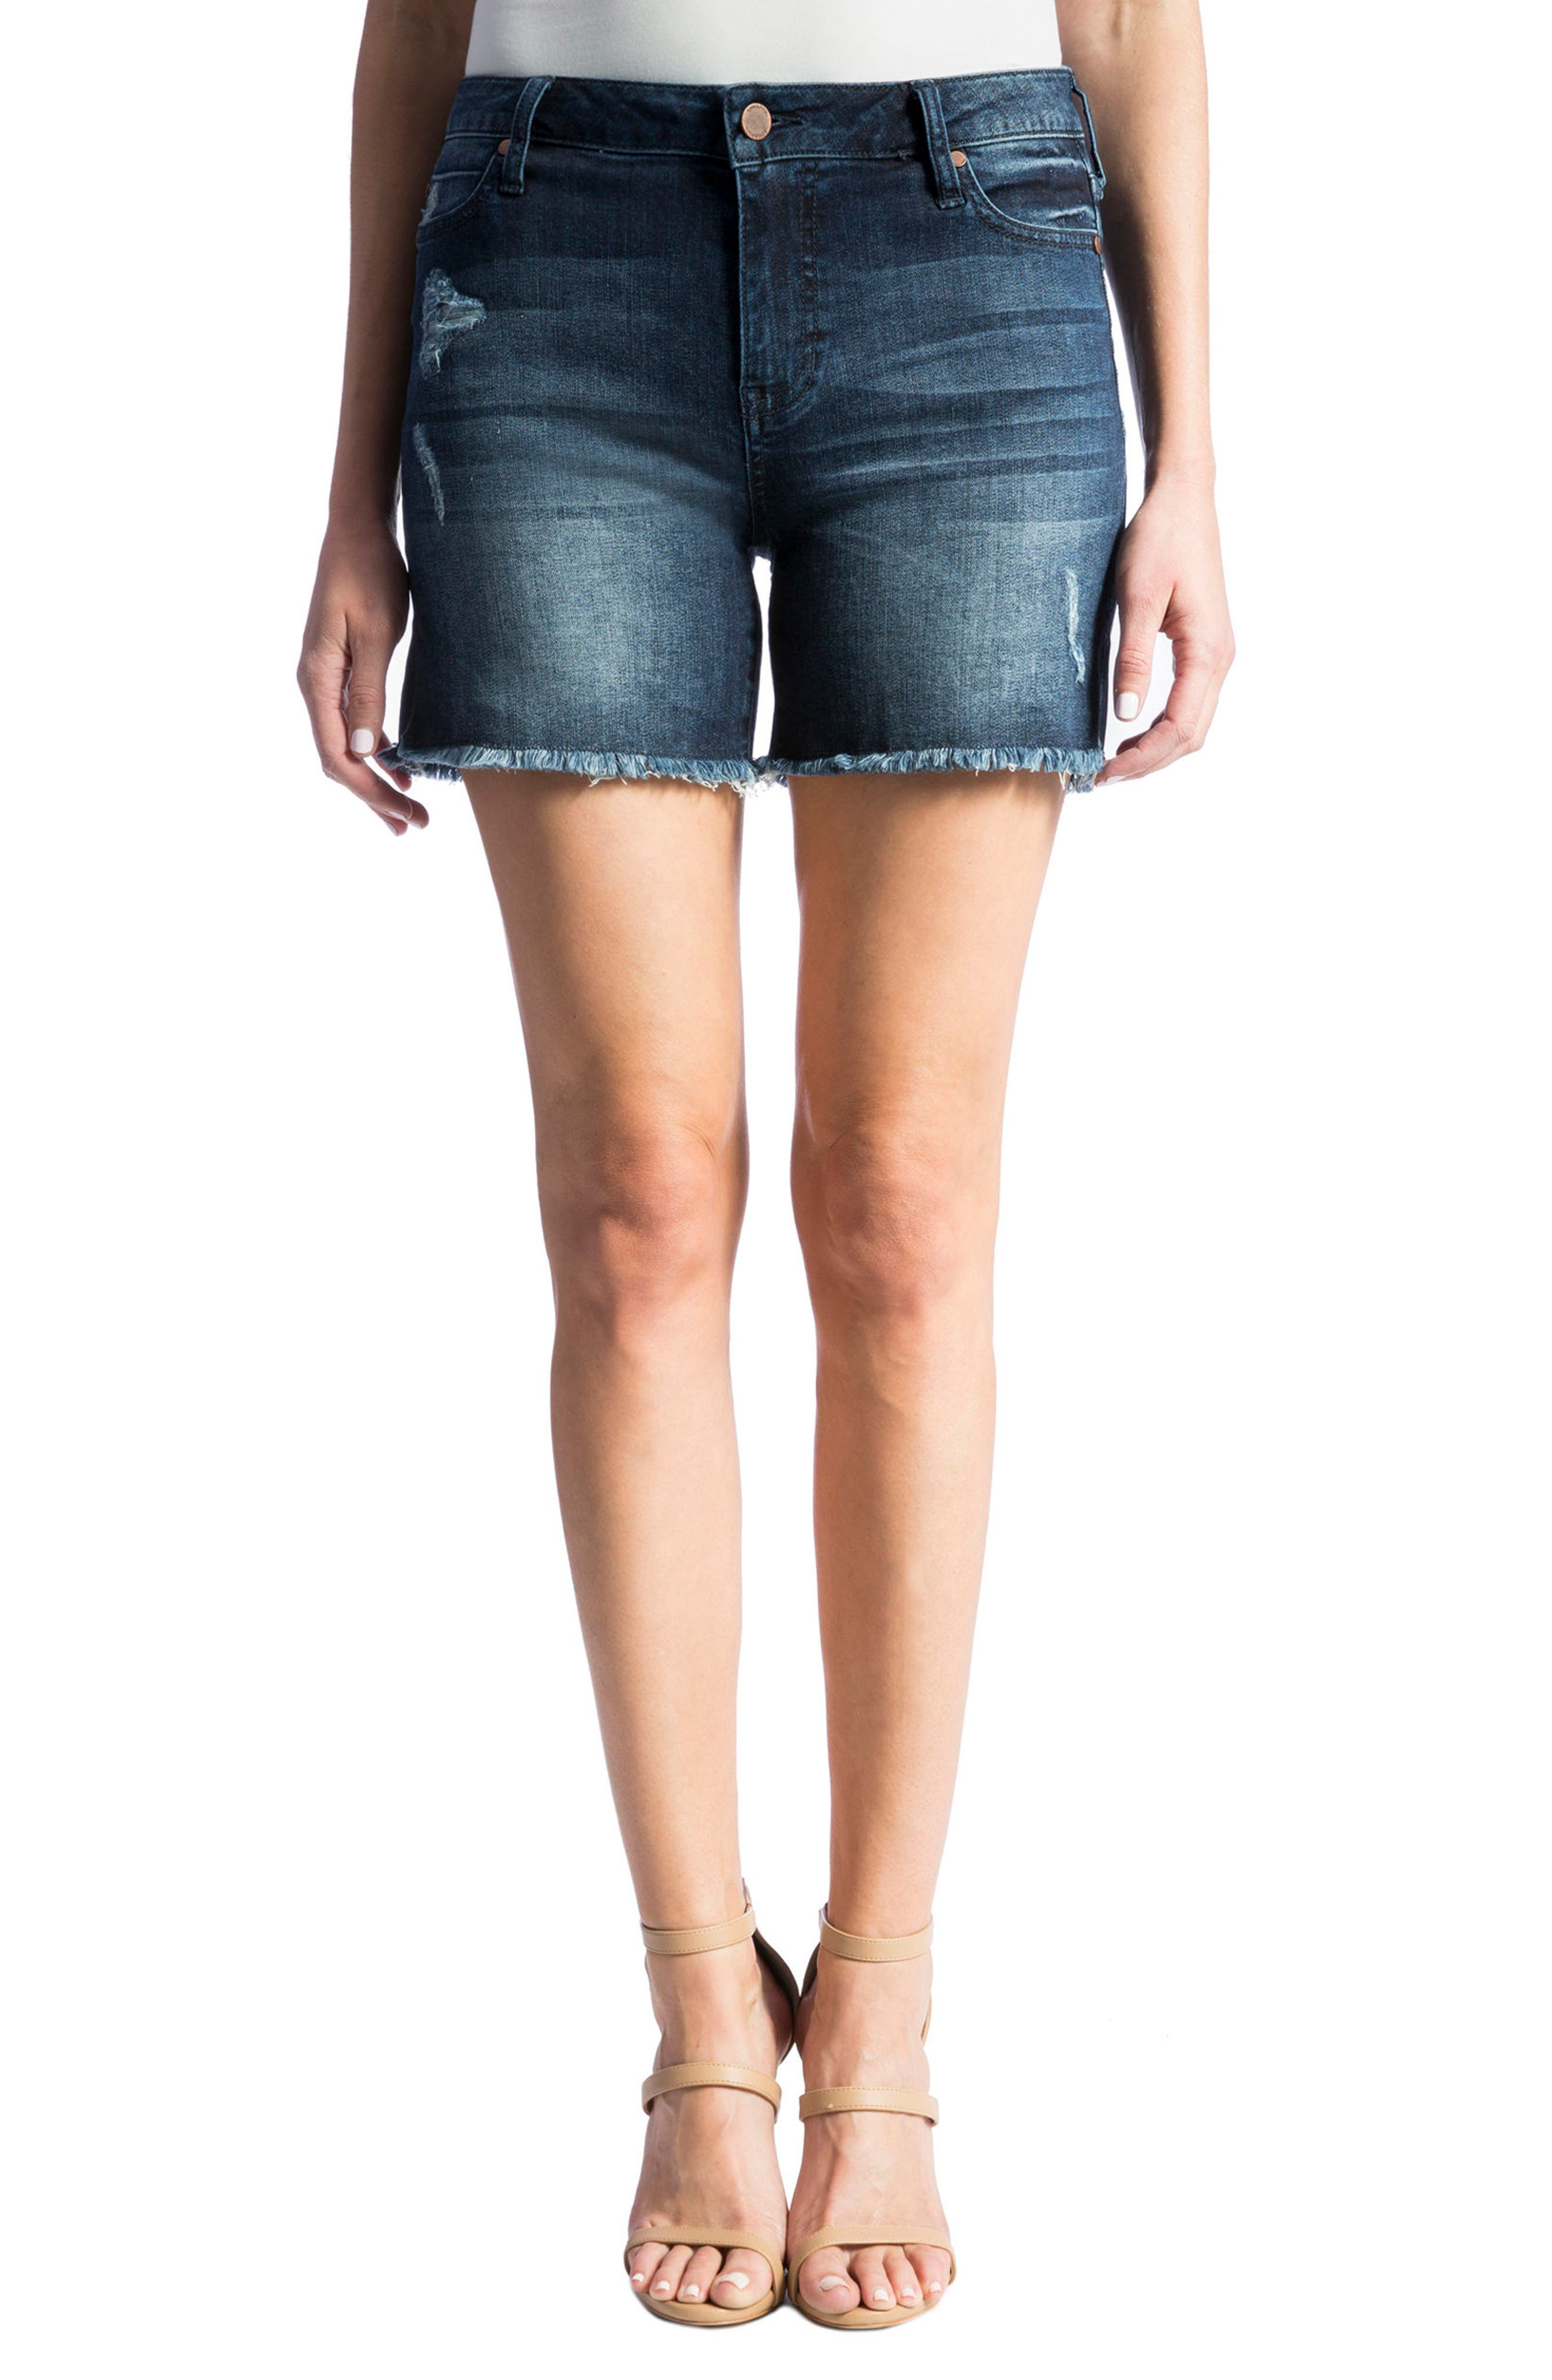 Liverpool Jeans Company Vickie Frayed Denim Shorts